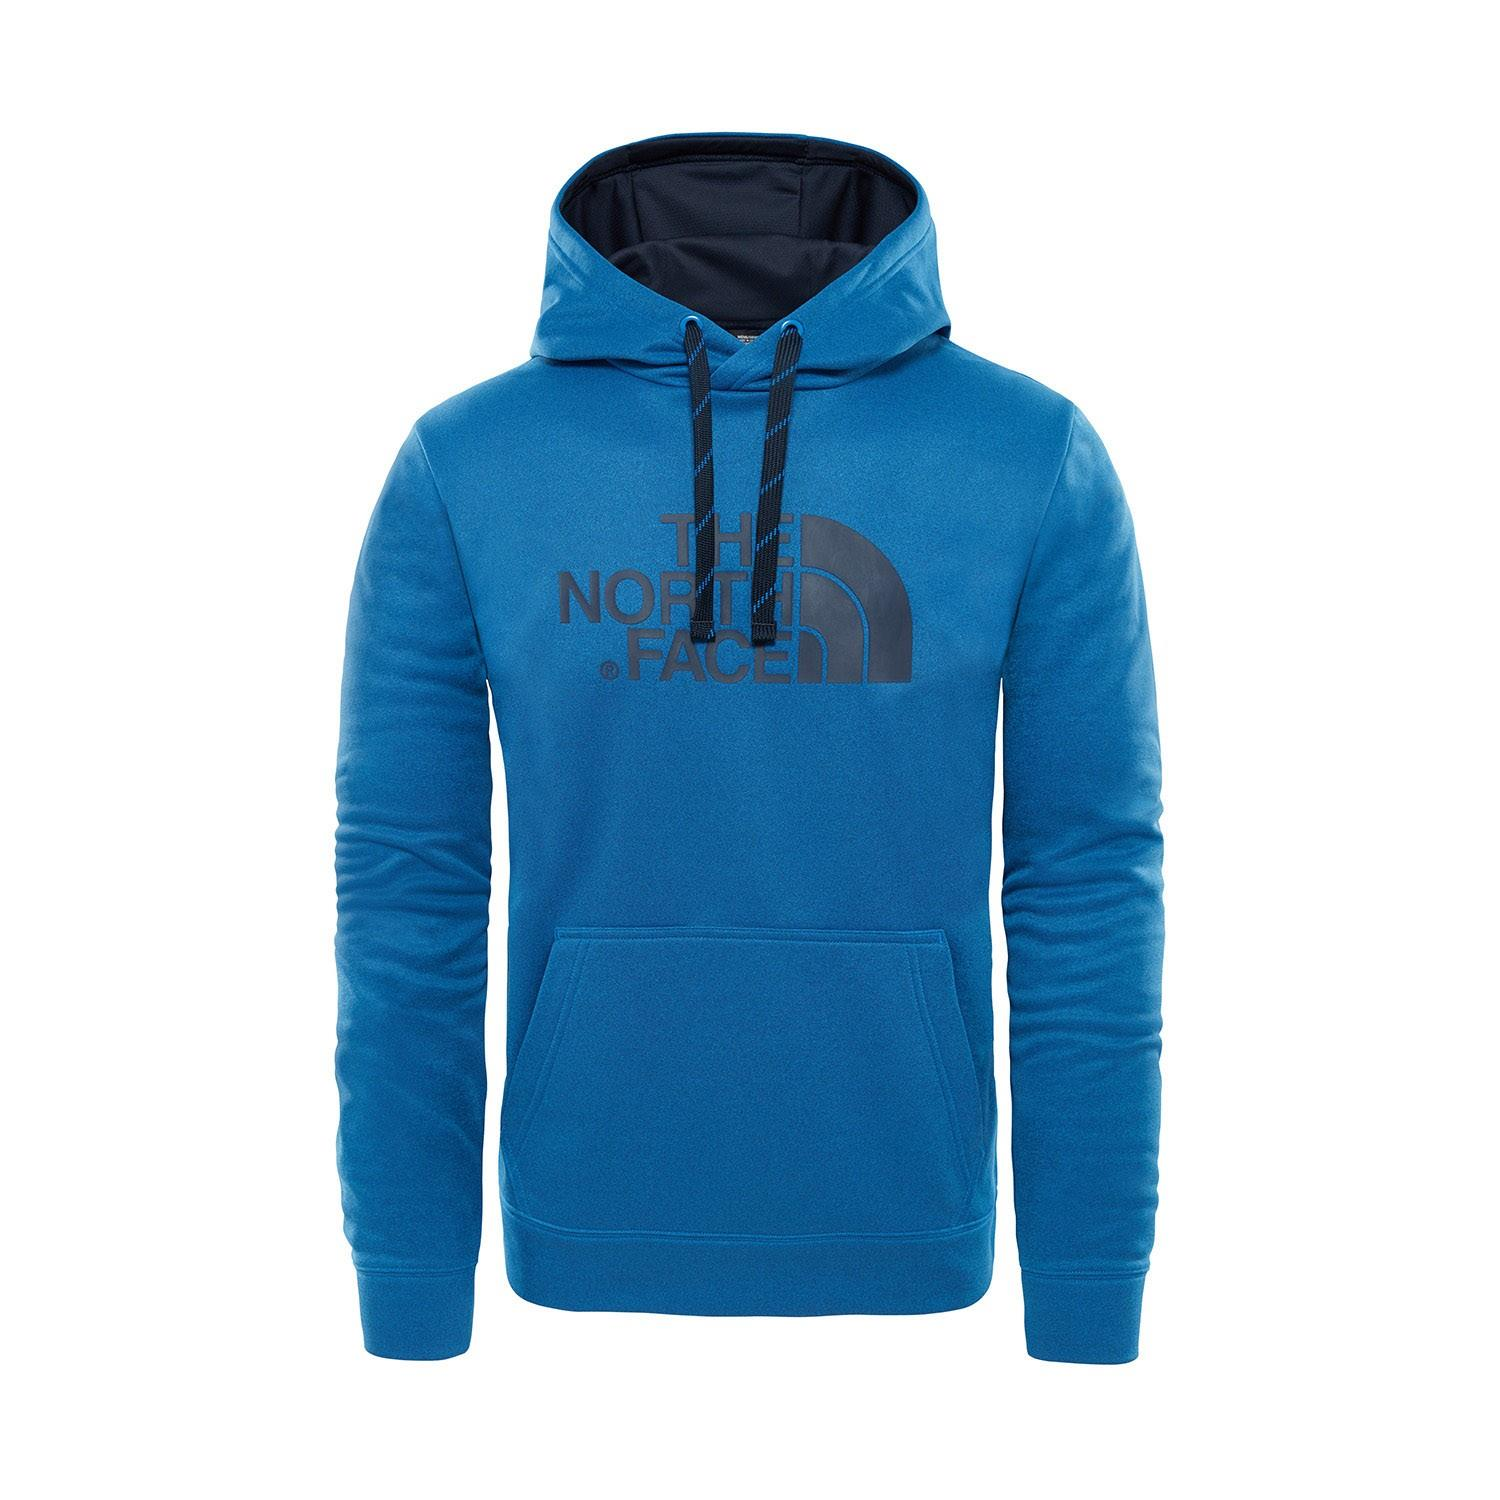 The North Face Erkek Sur Hd- Eu Sweatshirt T92XL82UA